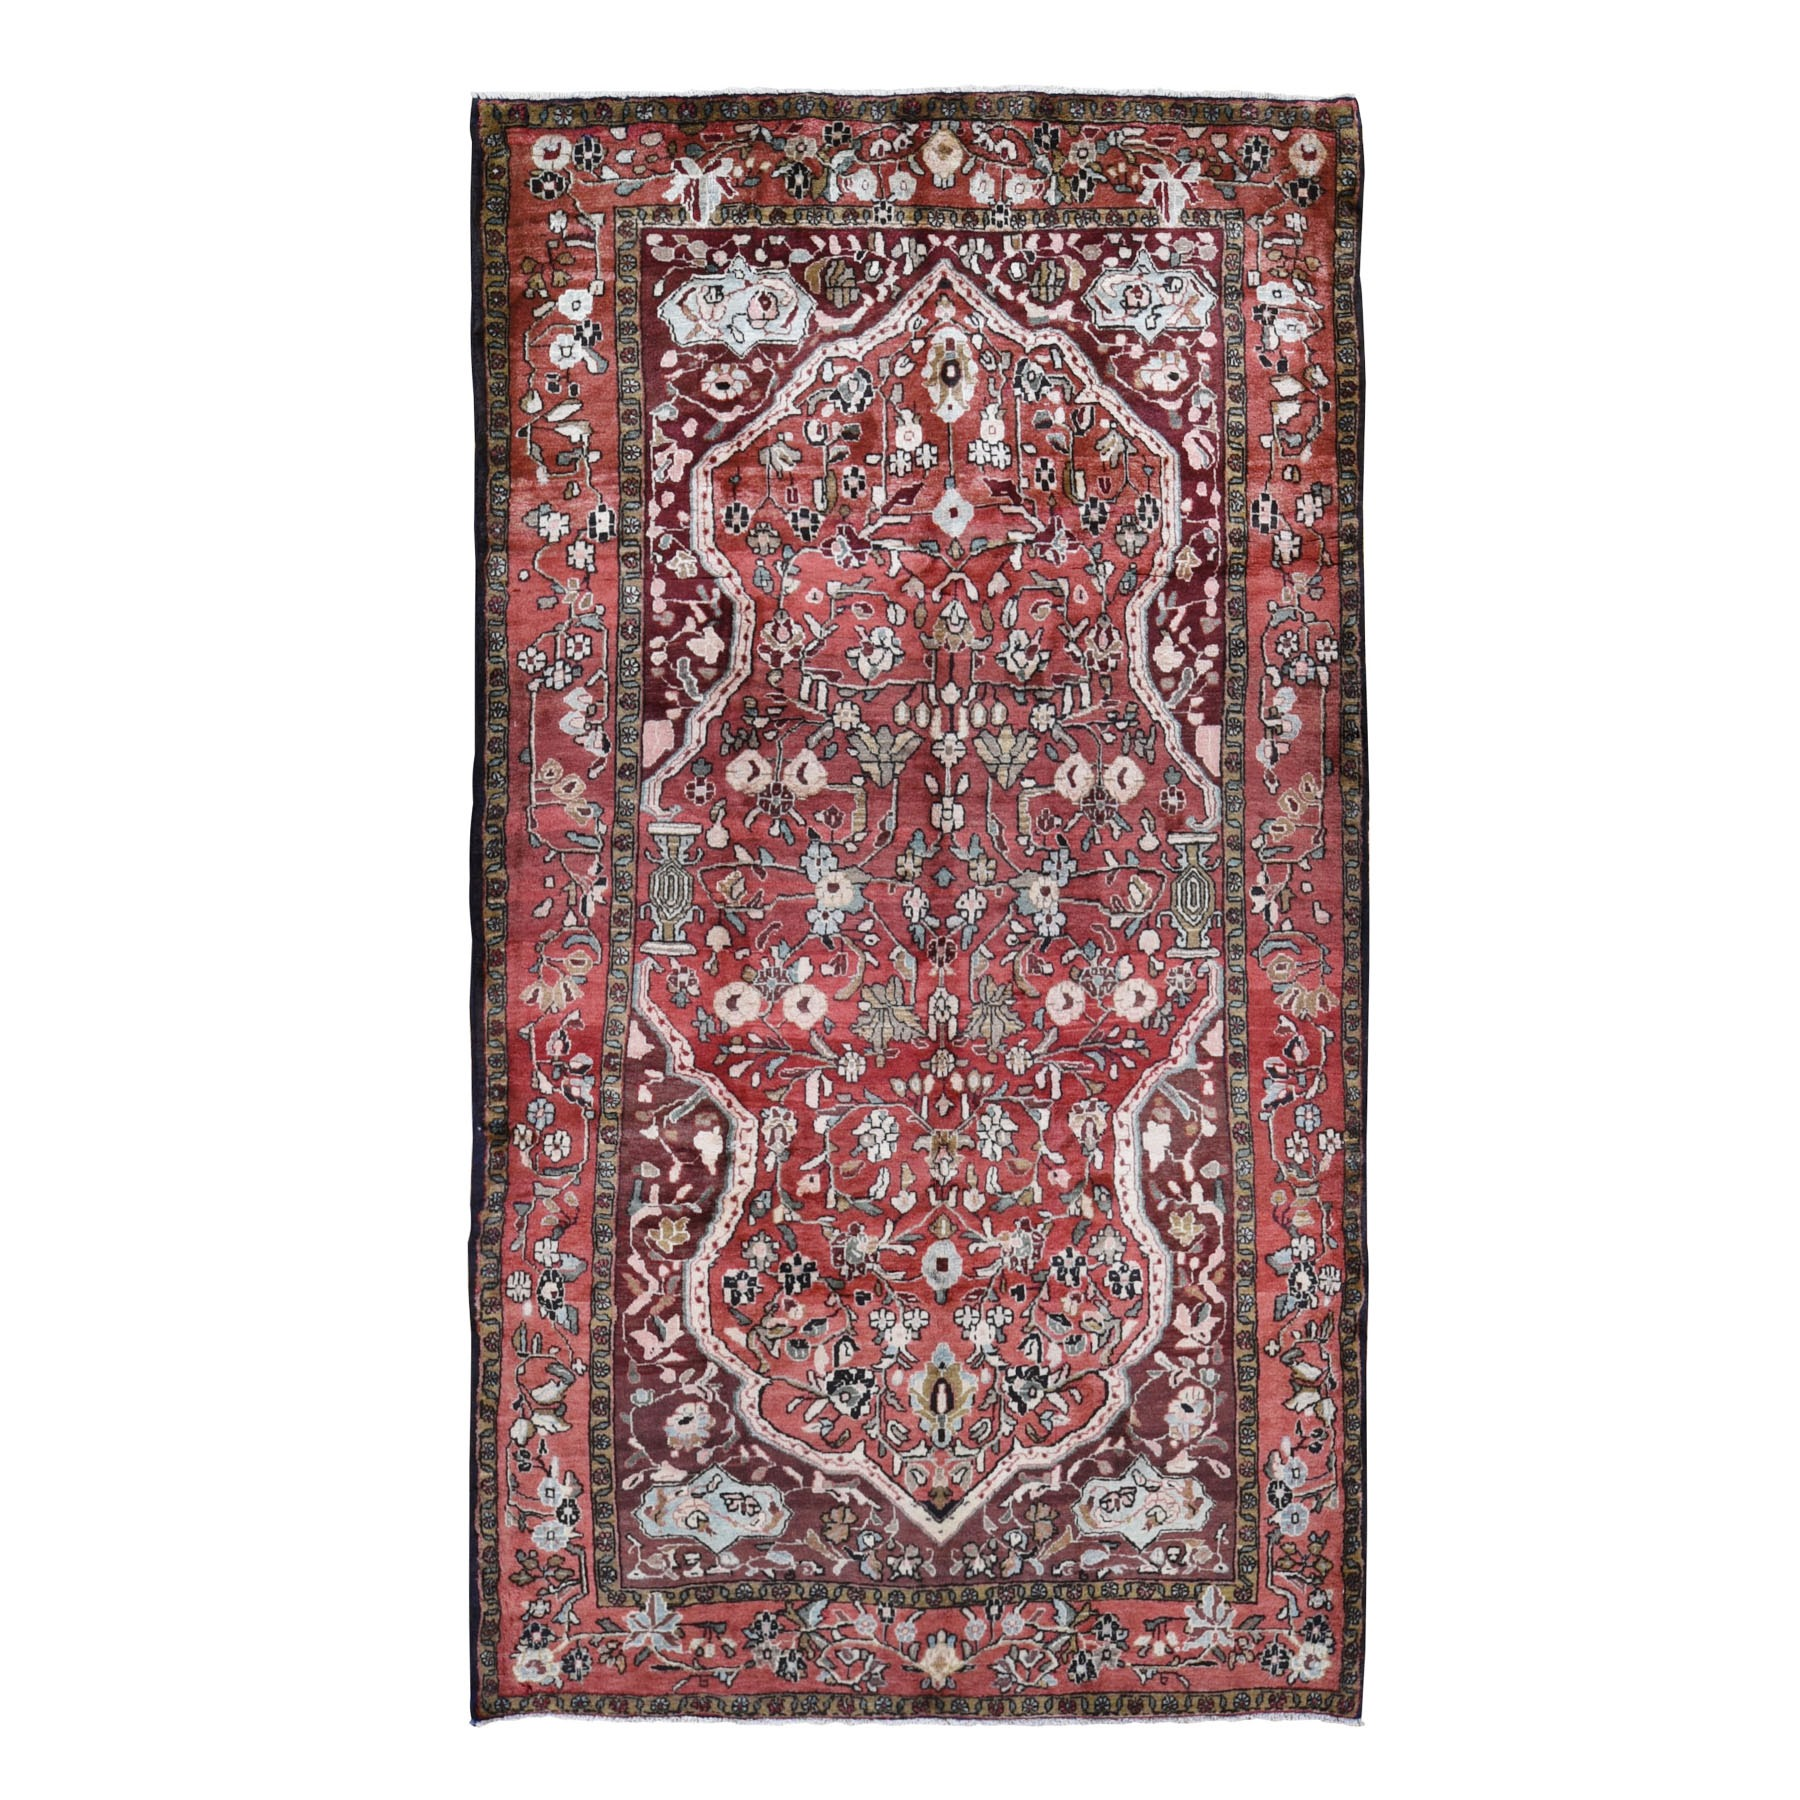 "5'8""x10'5"" Red Gallery Size Vintage Persian Mahal Full Pile Exc Cond Pure Wool Hand Knotted Oriental Rug"